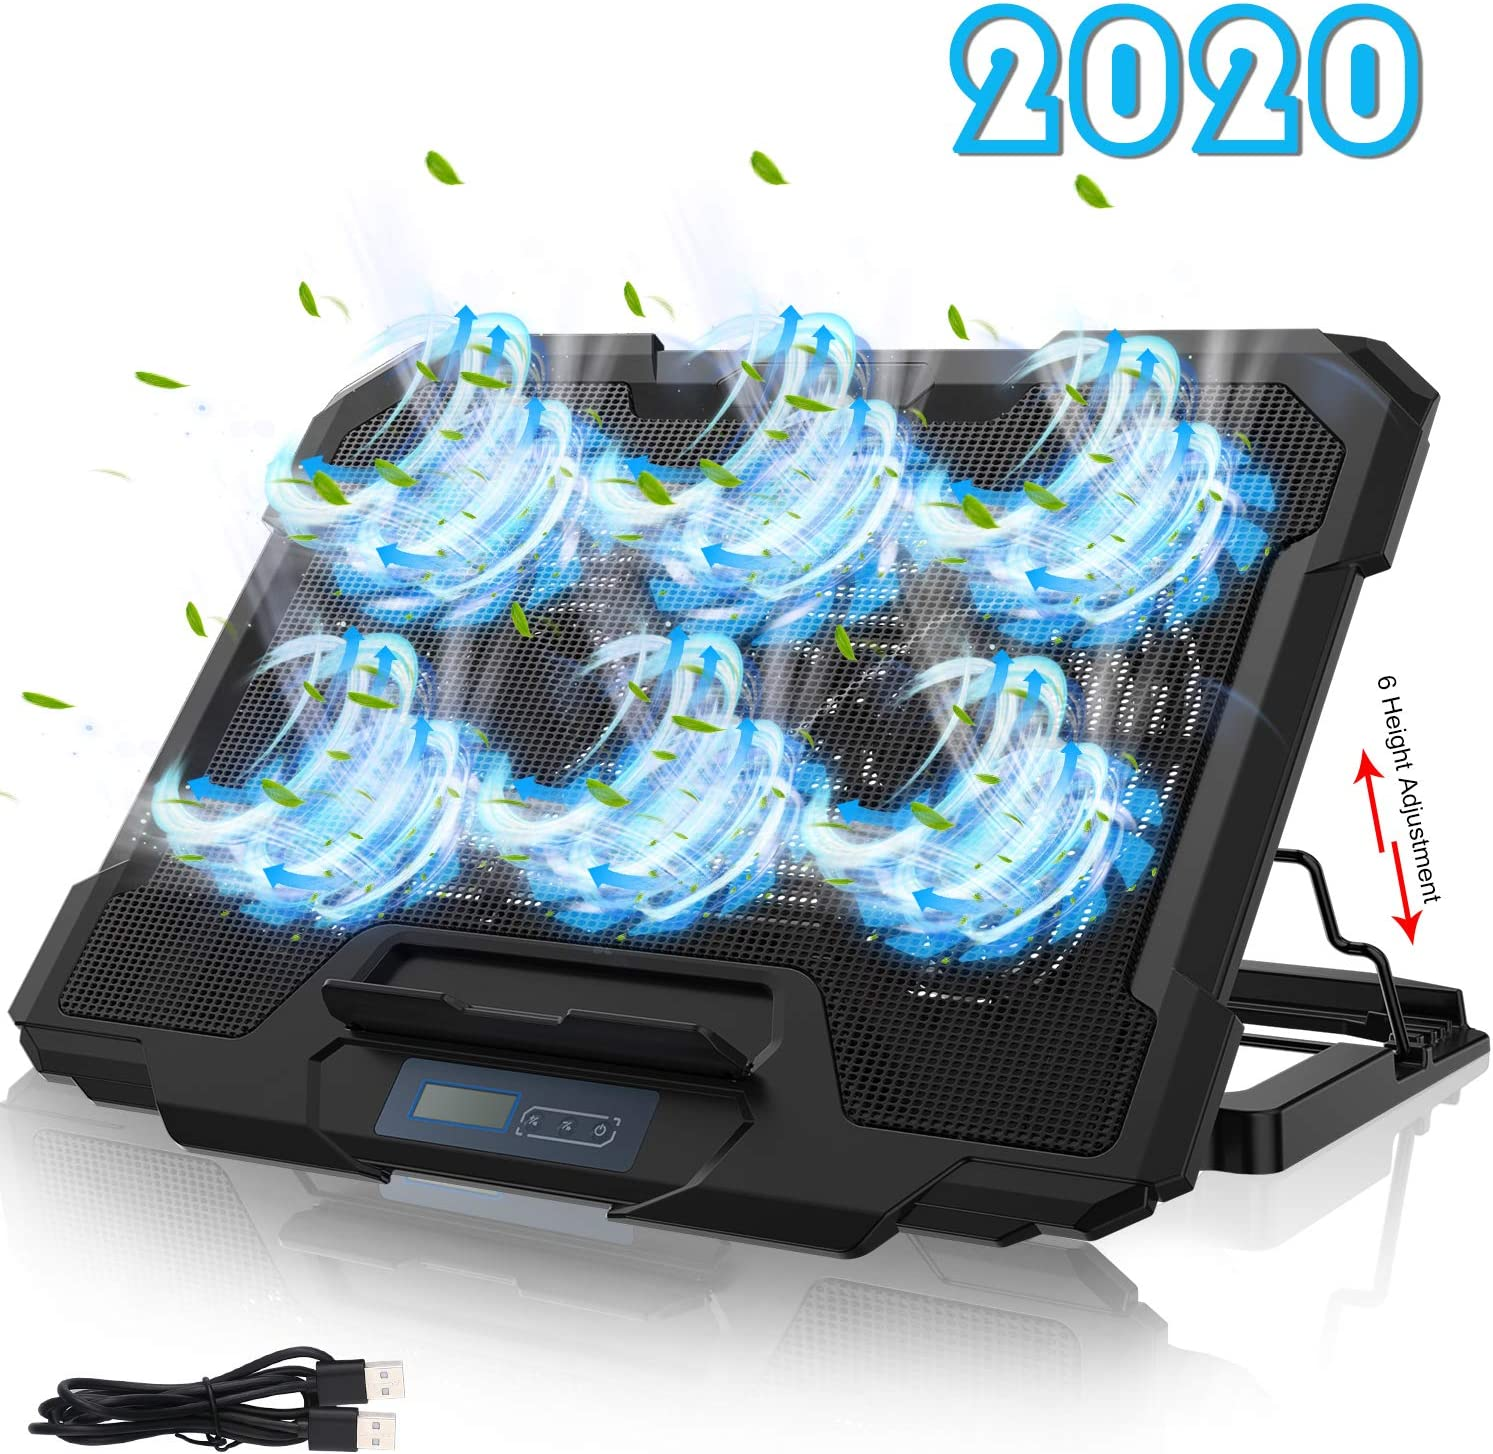 Dual USB Port Blue LED Light Compatible with 17inch Notebook Laptop PC Laptop Cooling Pad Stand Wind Speed Adjustable Notebook Cooler Cooling Pad